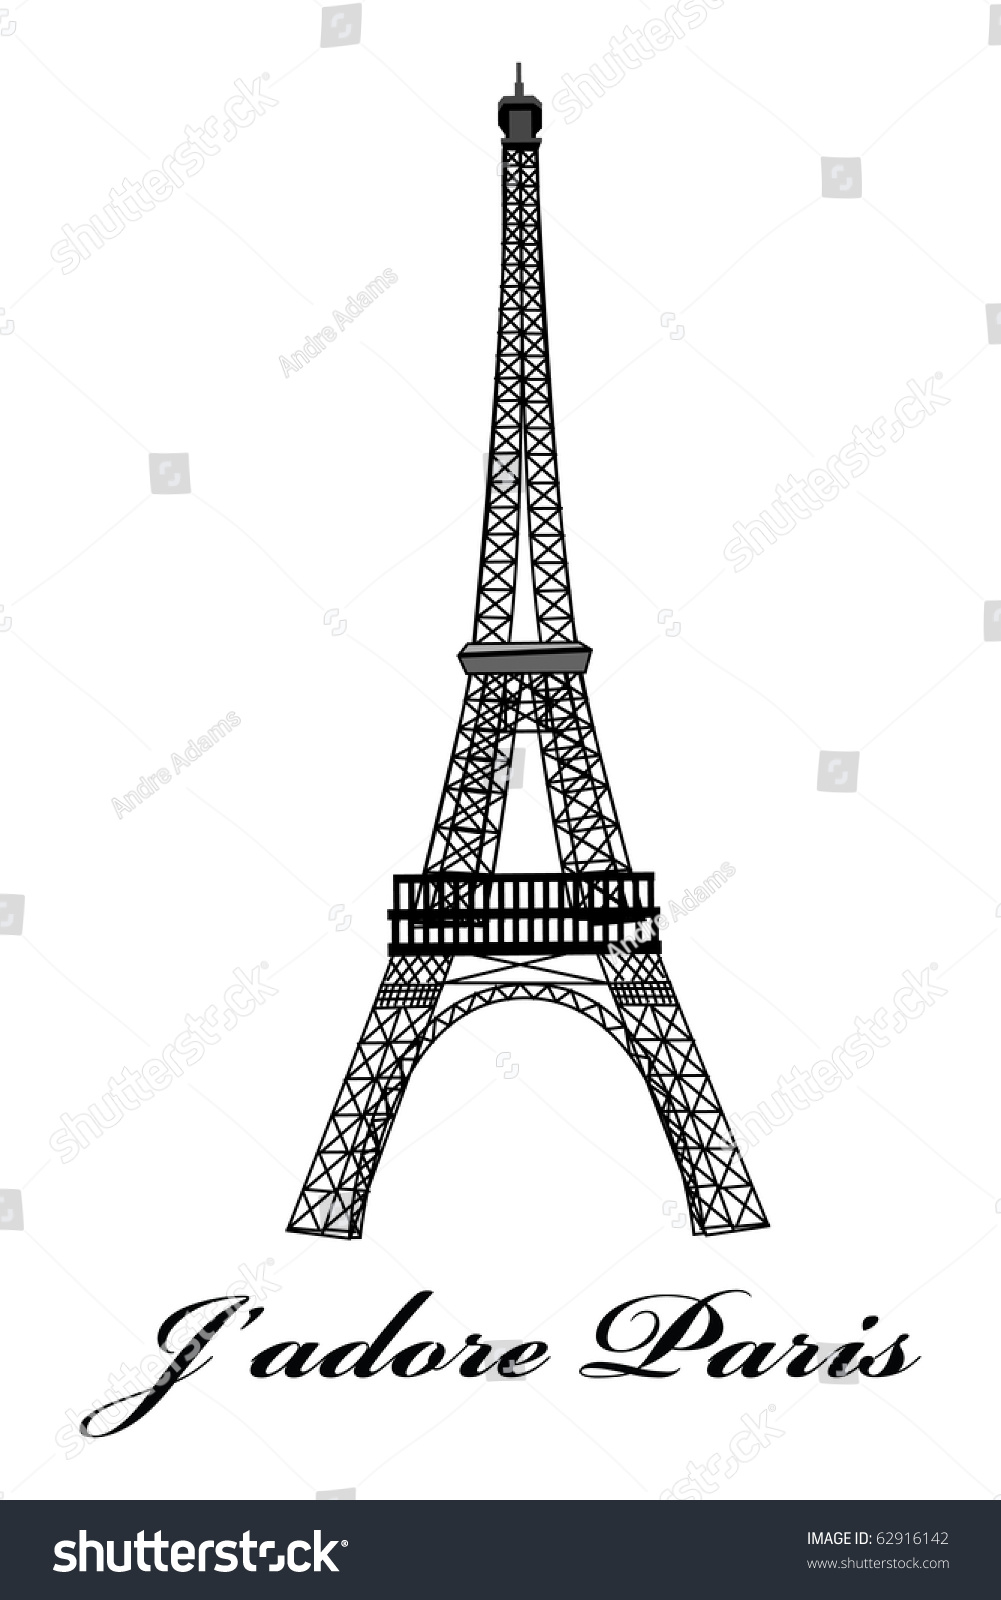 Cartoon Vector Outline Illustration Eiffel Tower Stock ...